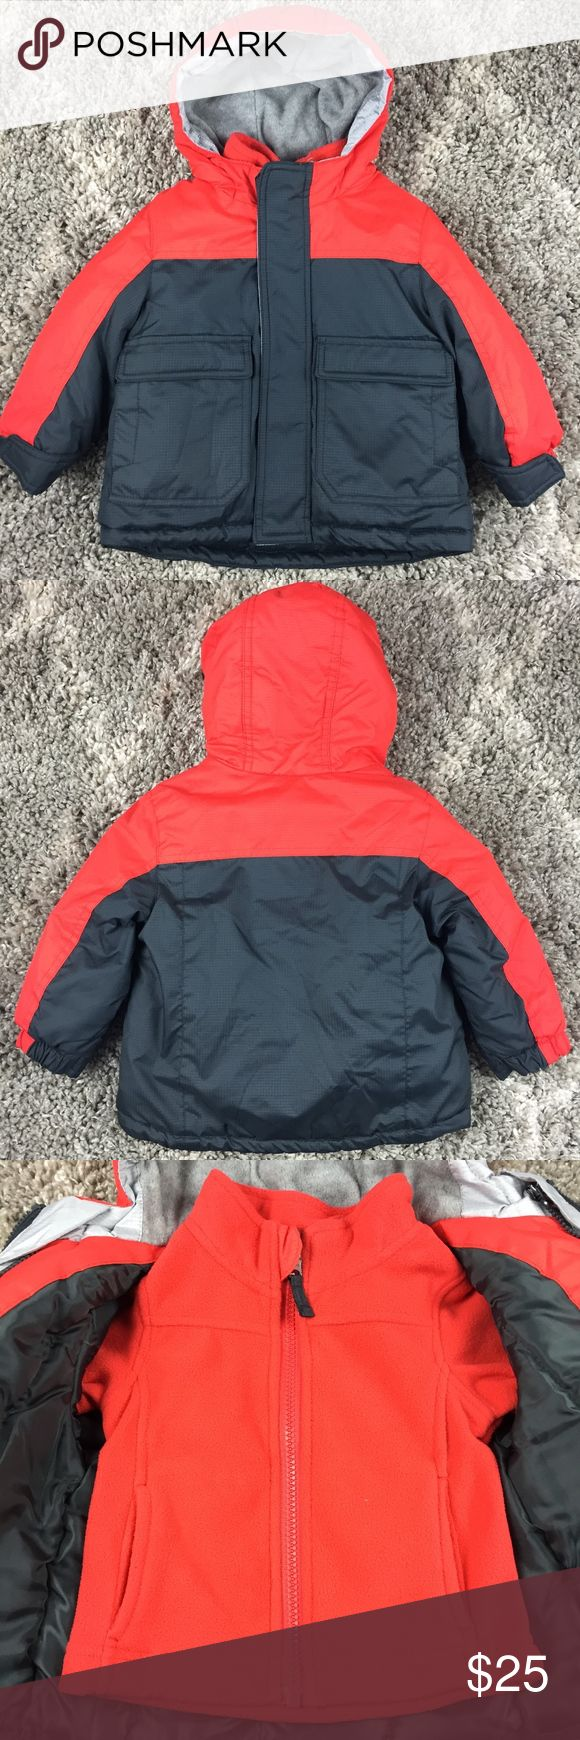 Healthtex Baby Boy's 3 in 1 Hooded Jacket Healthtex Baby Boy's Gray Orange Hooded 3 In 1 Jacket Gray  Size: 12 Months Condition: Excellent, only worn once  Check out my closet for other baby boy items.   New listings daily, most are new with tags or like new condition. Bundle and Save! Ships in 24 hours Healthex Jackets & Coats